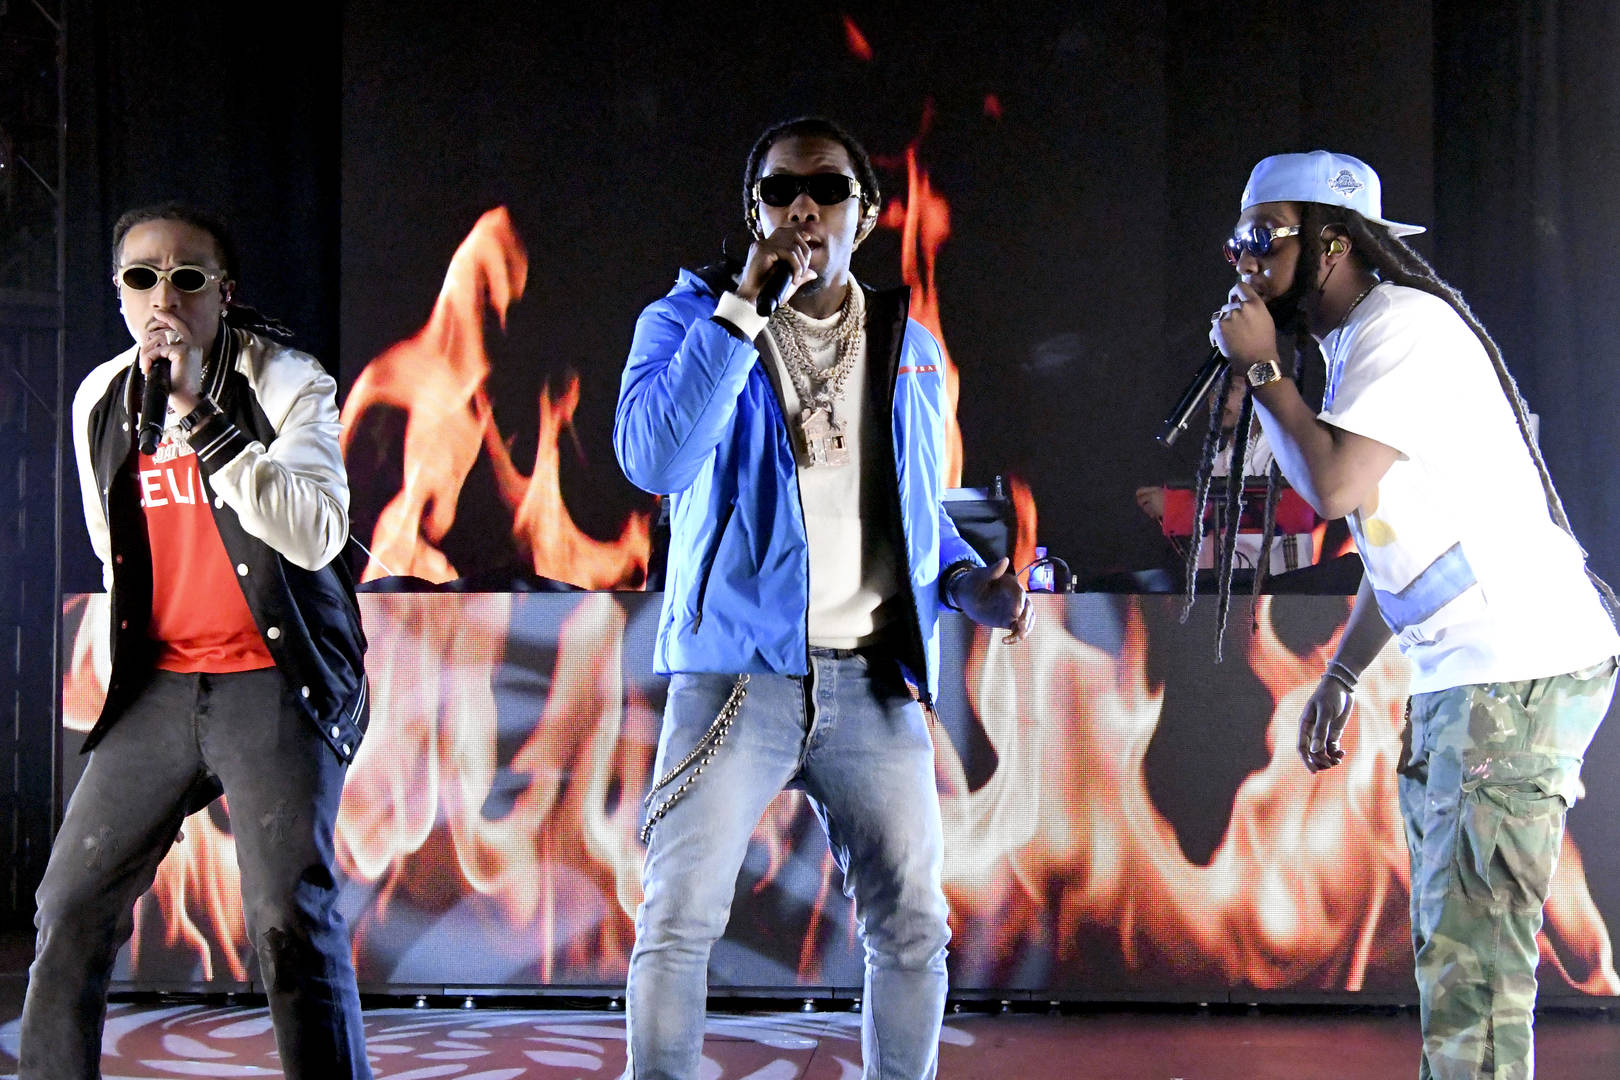 Quavo, Offset, and Takeoff of Migos perform during The SHAQ Bowl for Super Bowl LV on February 07, 2021 in Tampa, Florida.